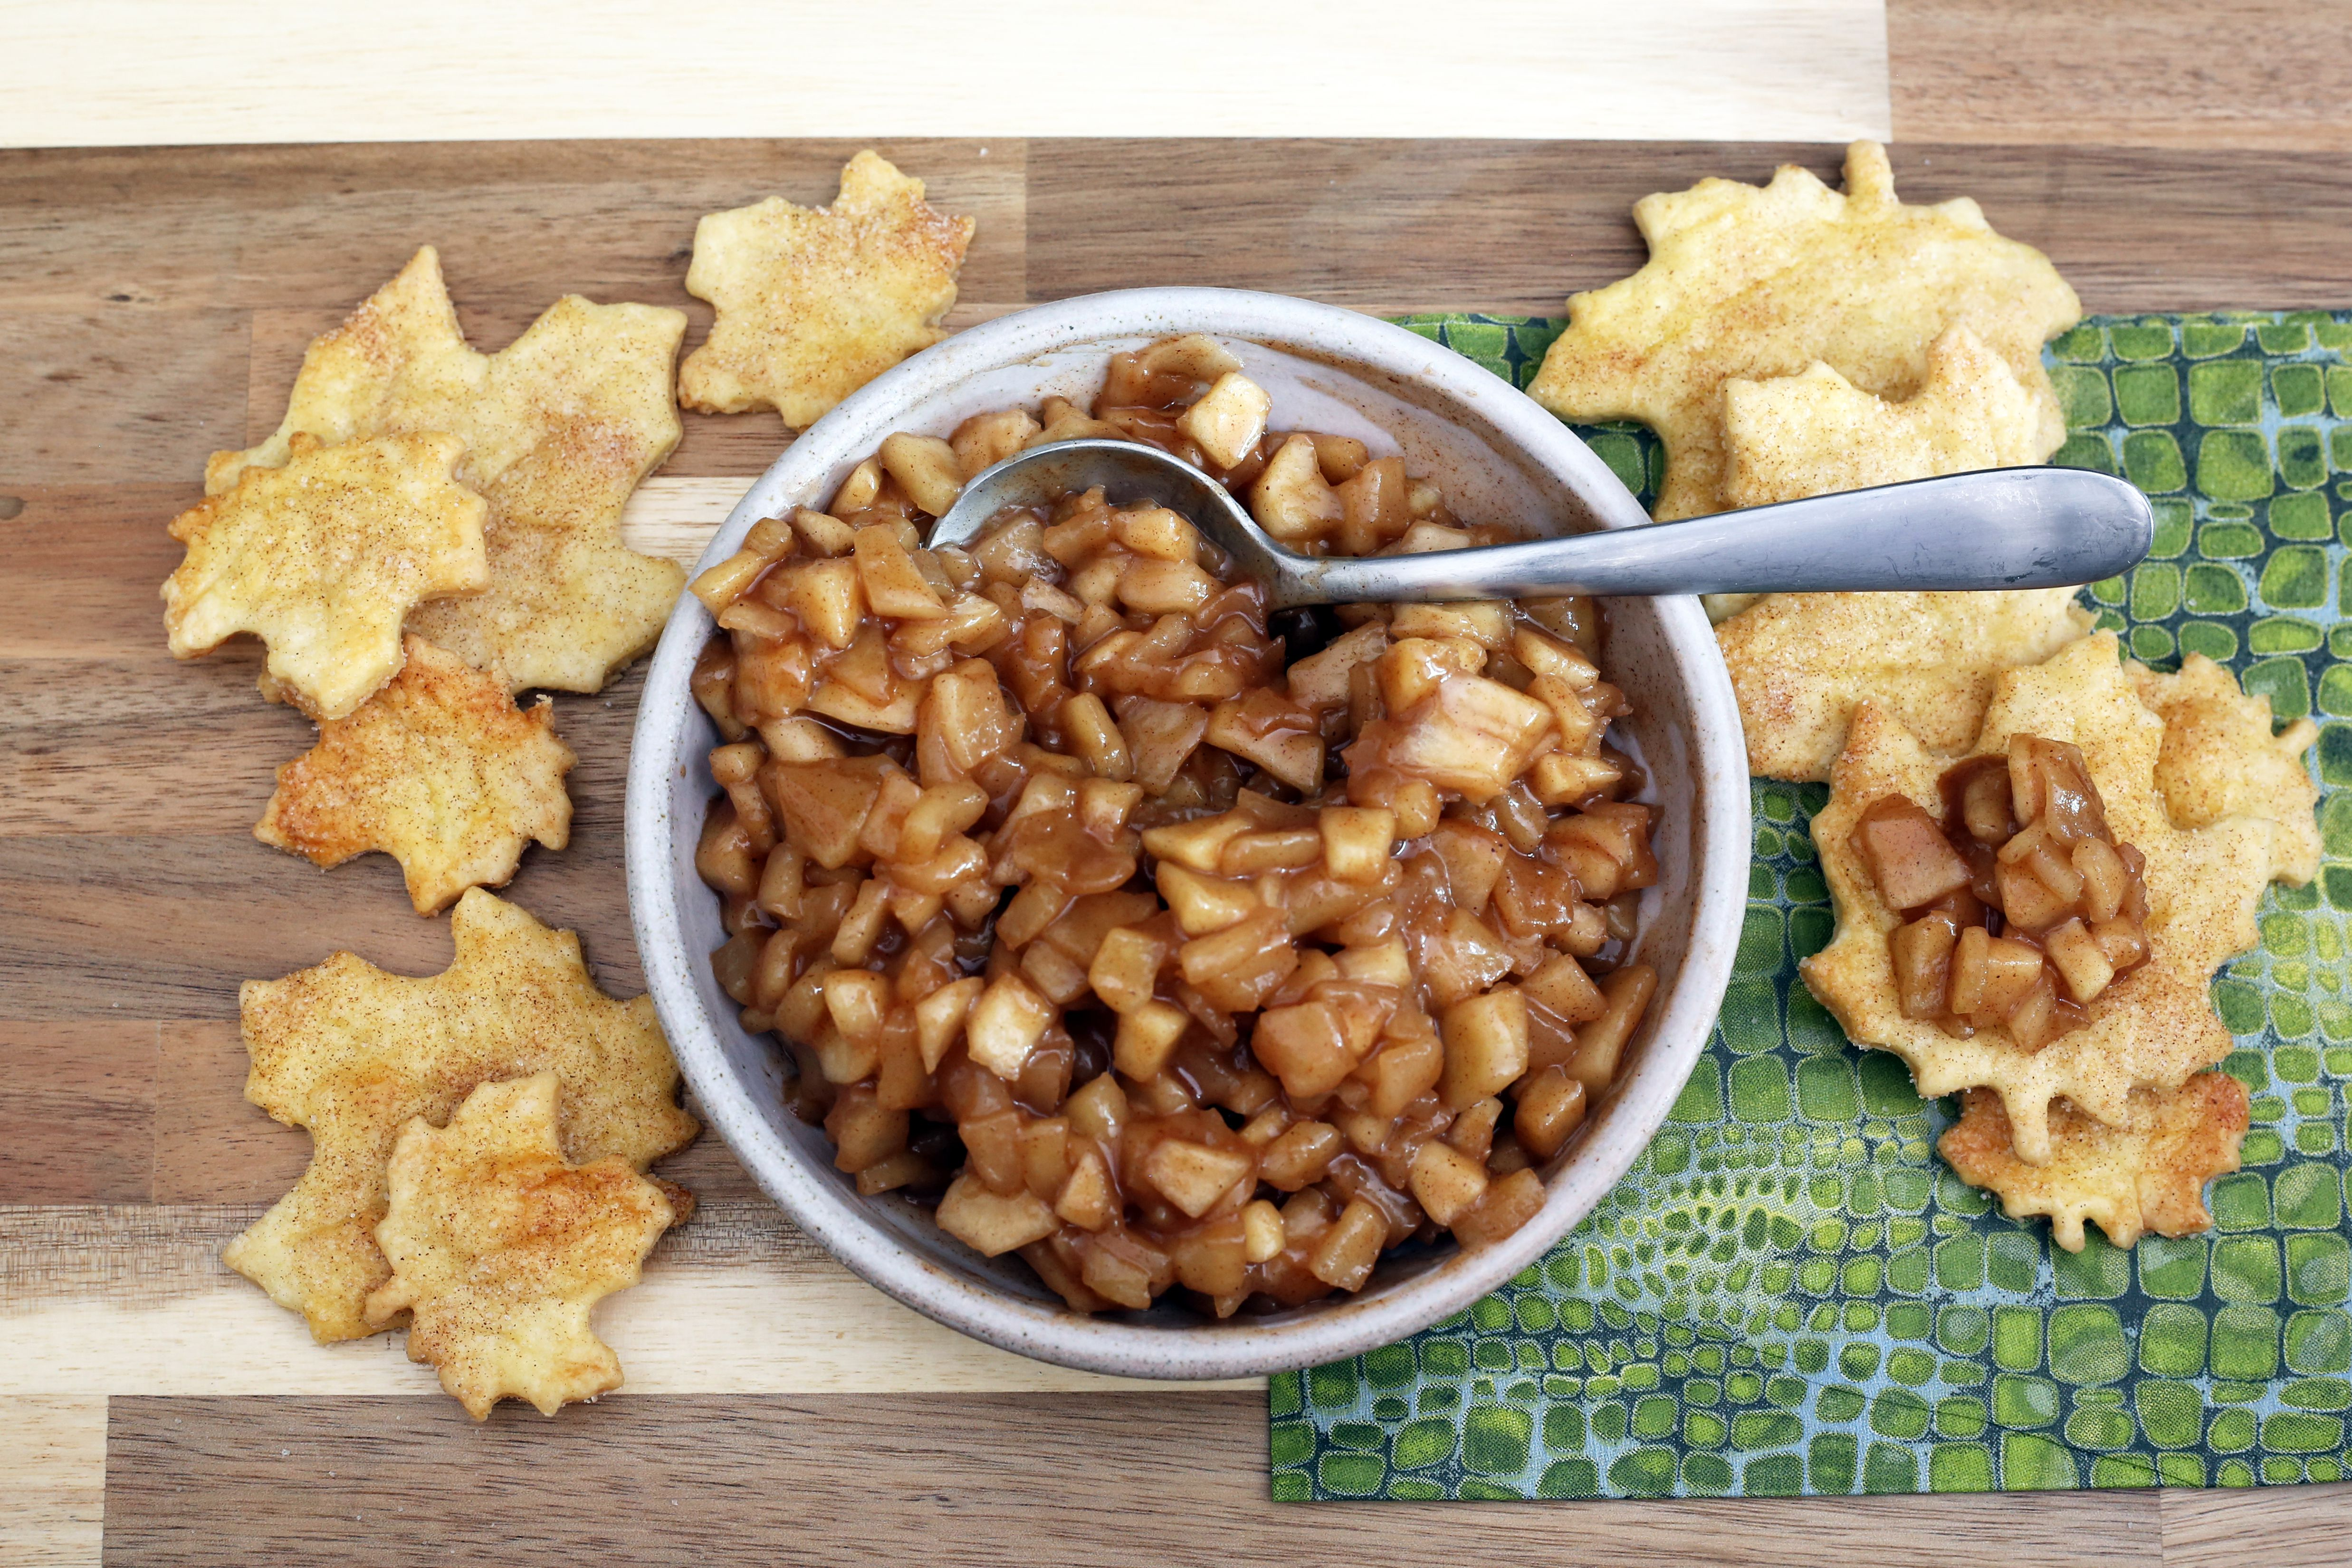 Apple Pie Dip With Piecrust Chips